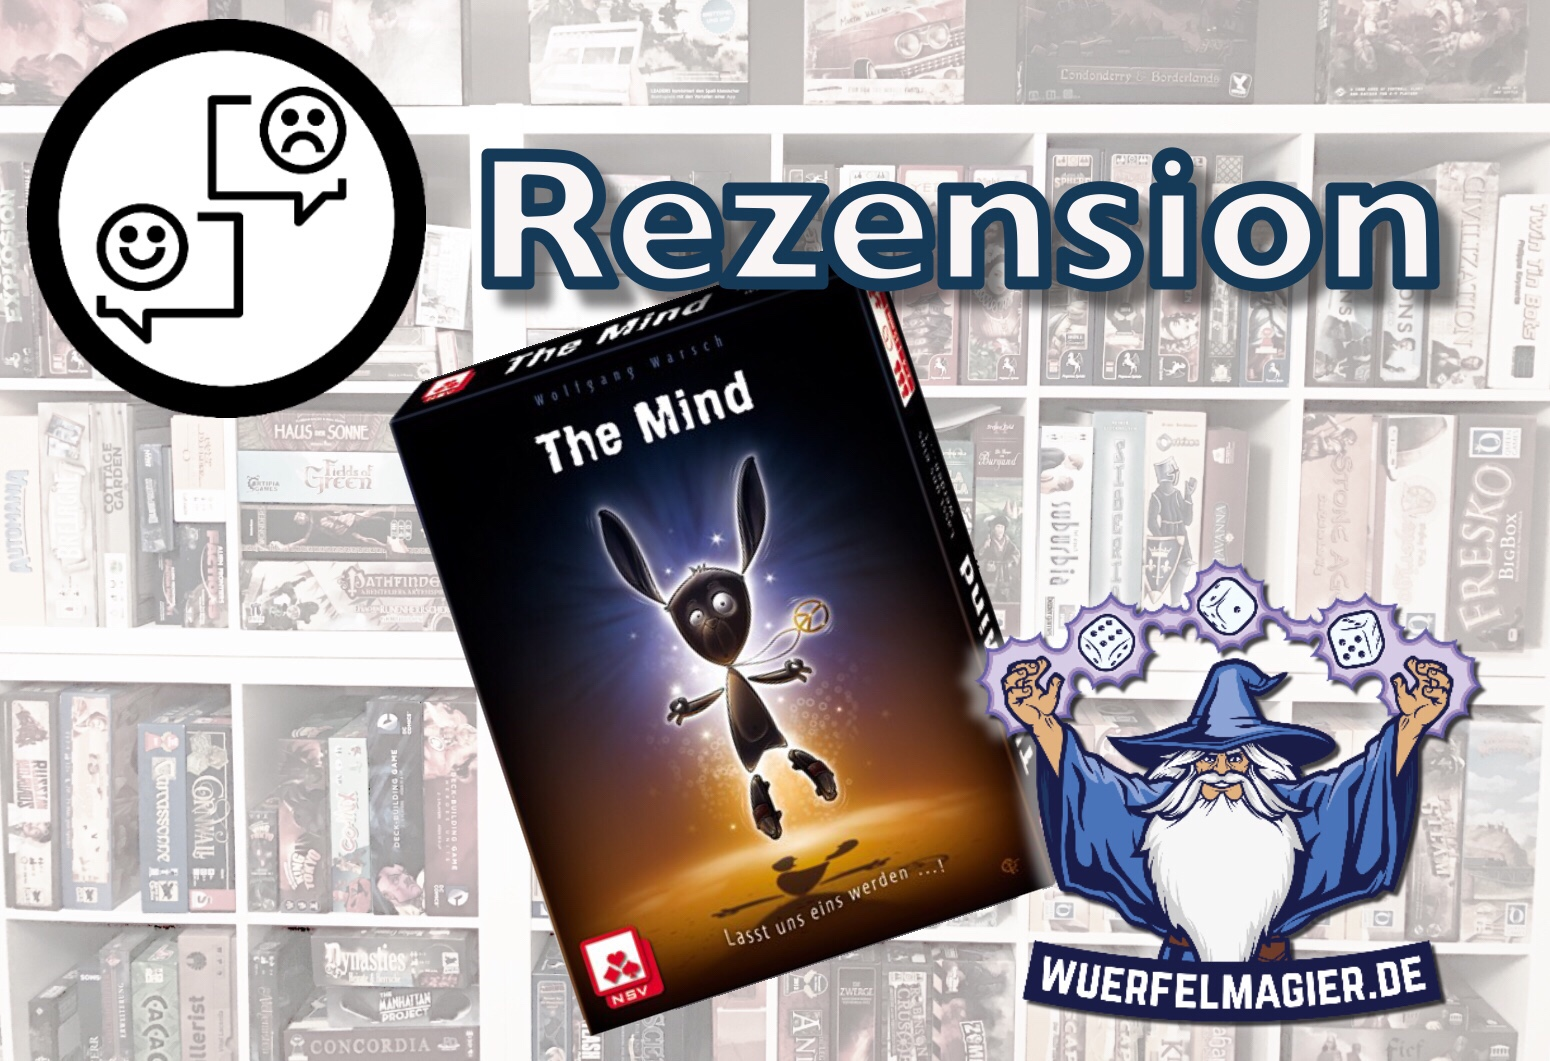 The Mind Rezension Würfelmagier Wuerfelmagier